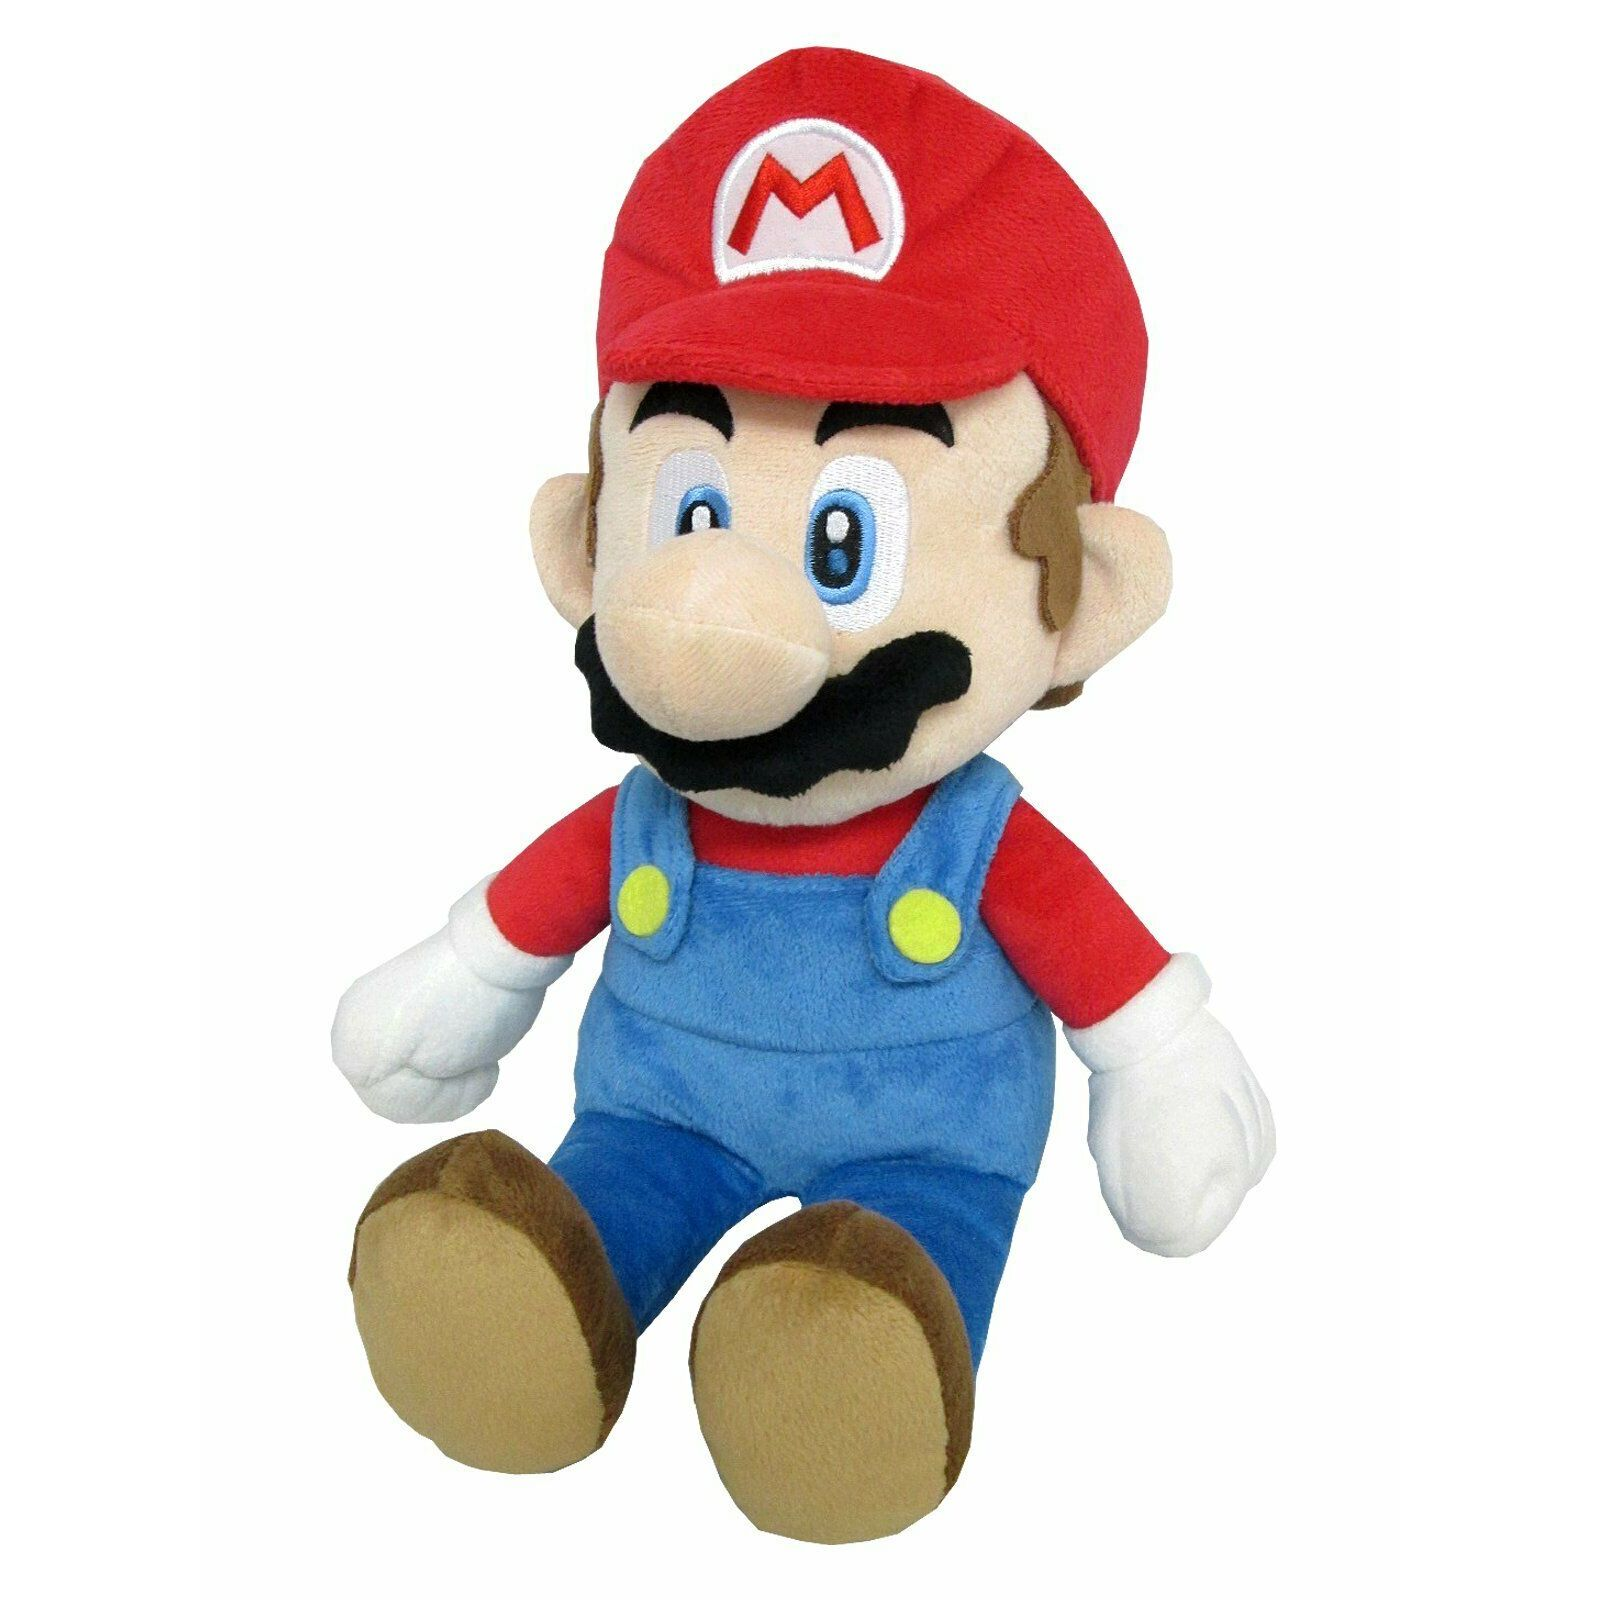 Mario LARGE Official Super Mario All Star Collection Plush (1)